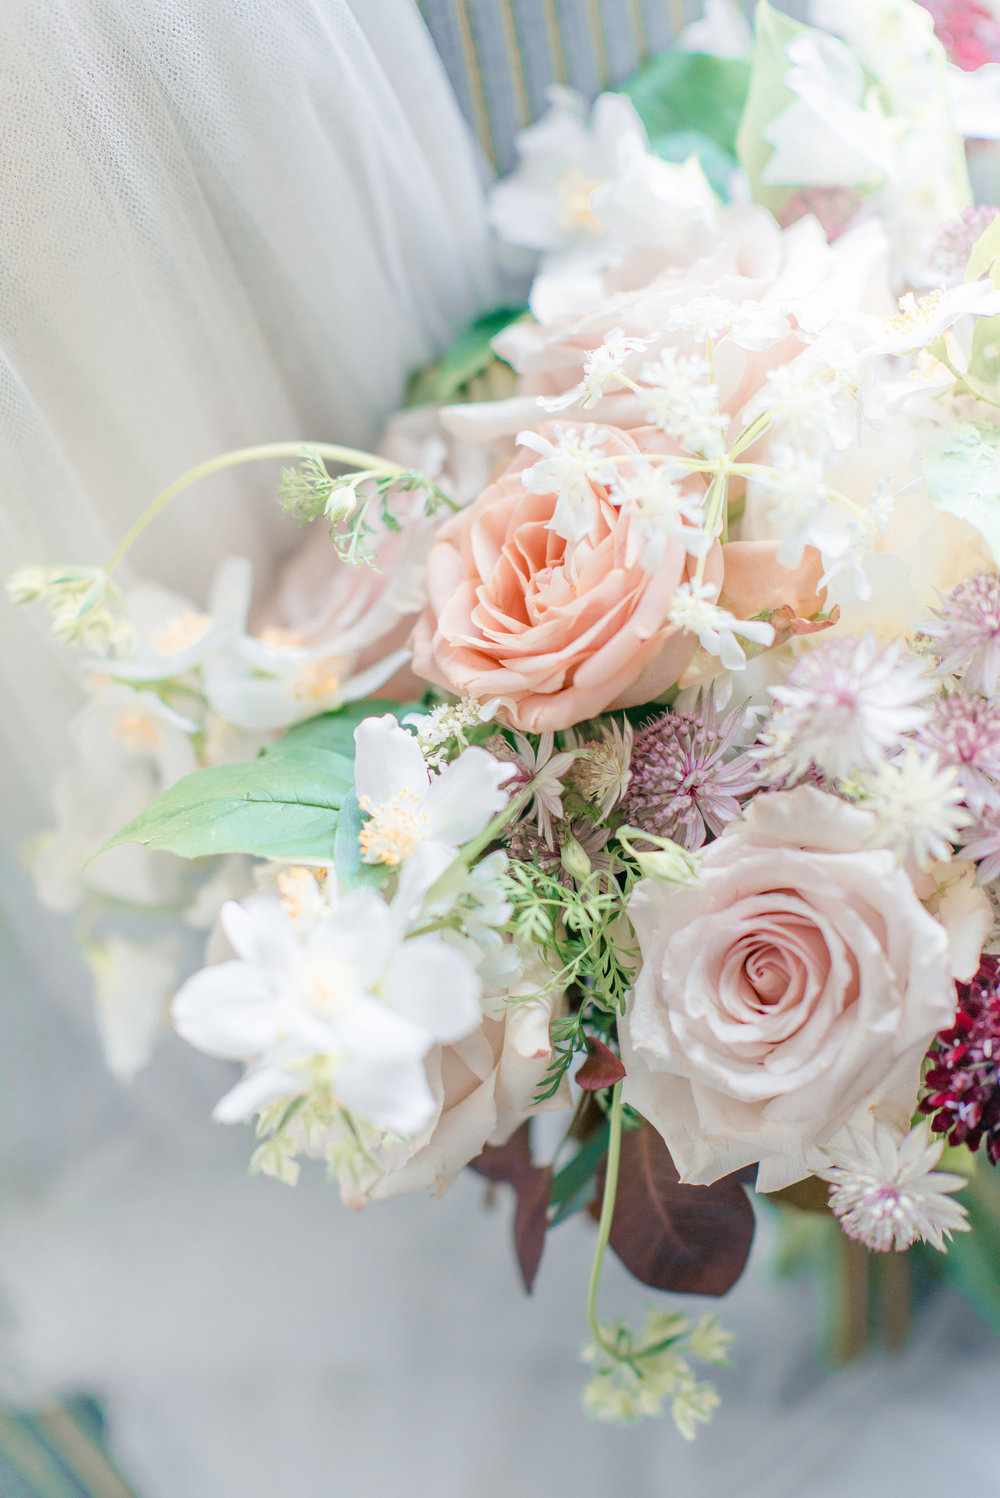 The Timeless Stylist-Elegant and Romantic Wedding Styling-Soft and Gentle Wedding Bouquet